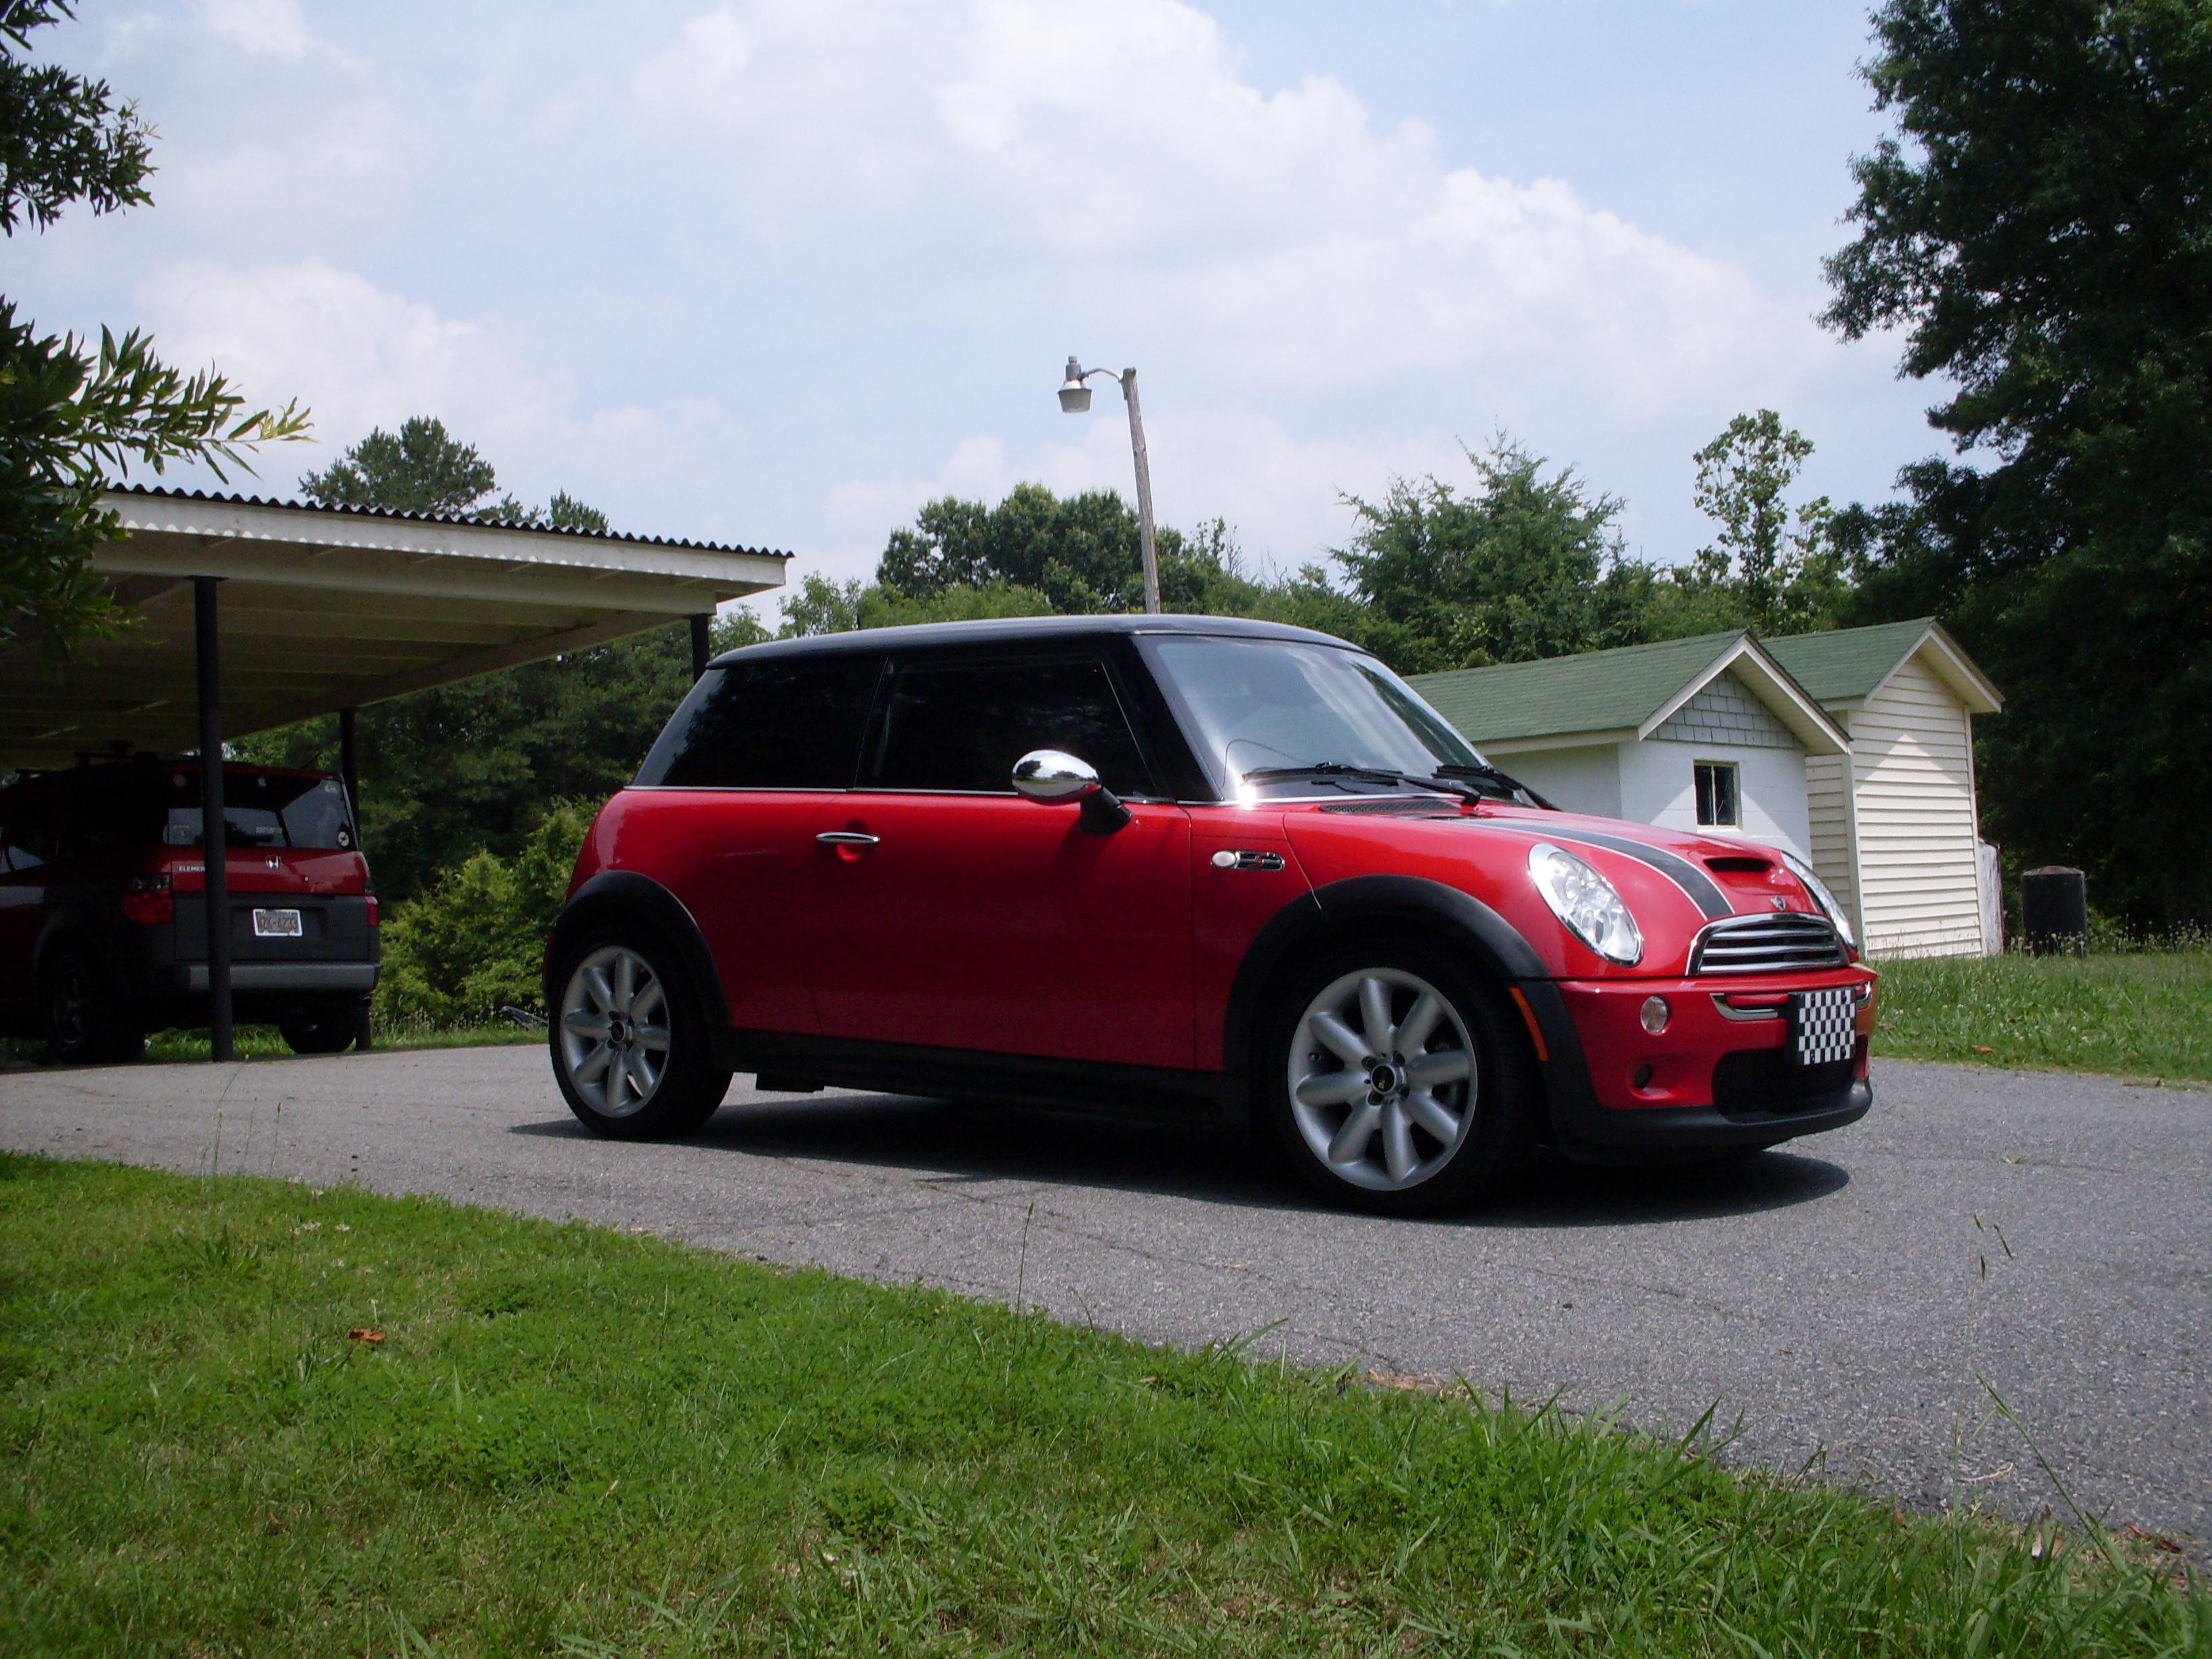 sr597runner 39 s 2005 mini cooper in concord nc. Black Bedroom Furniture Sets. Home Design Ideas